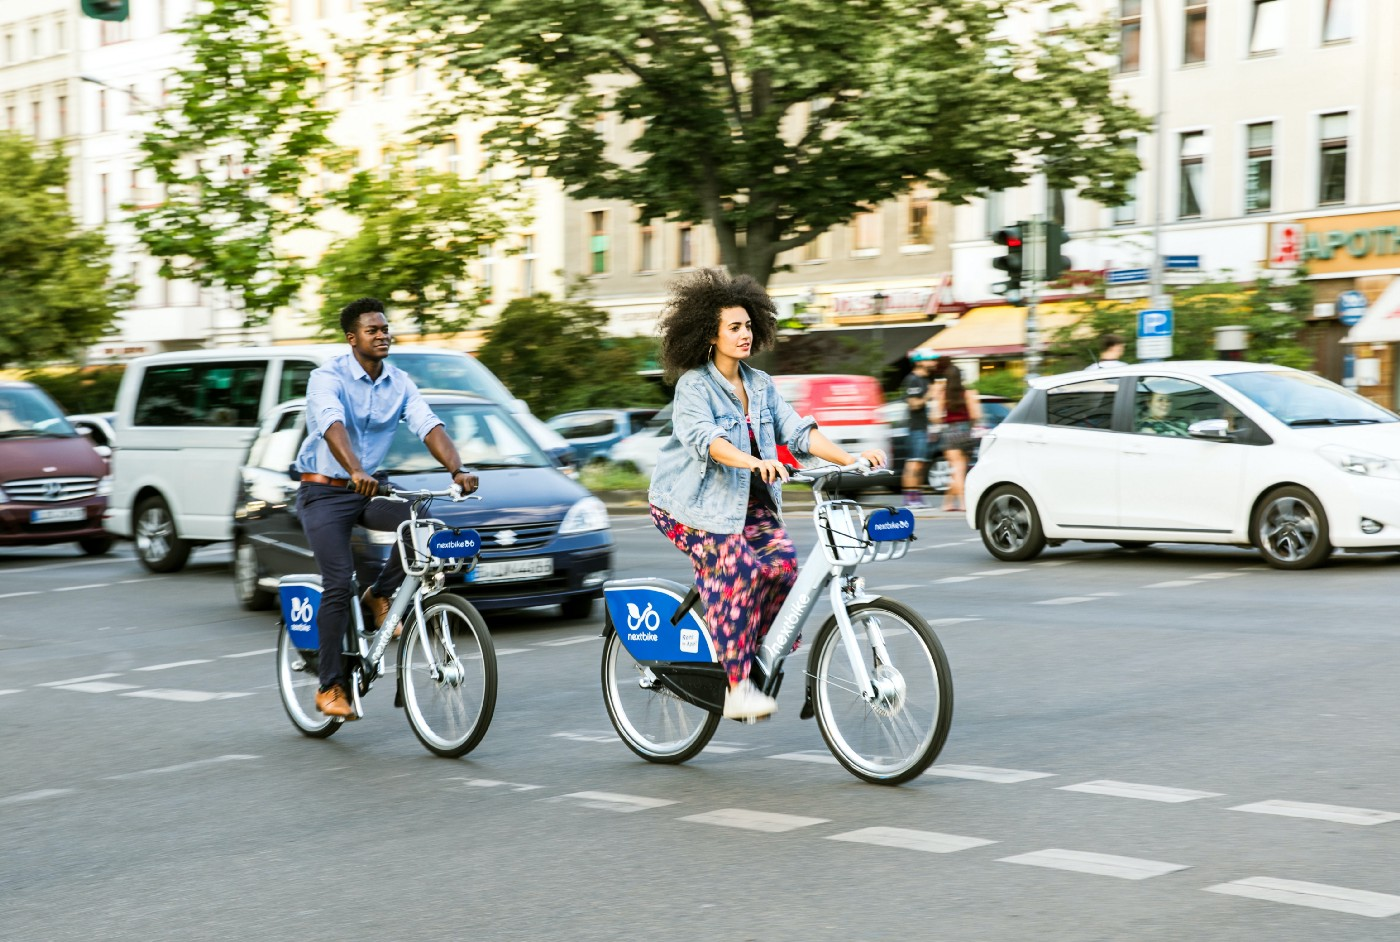 Woman riding a share bike in a city.